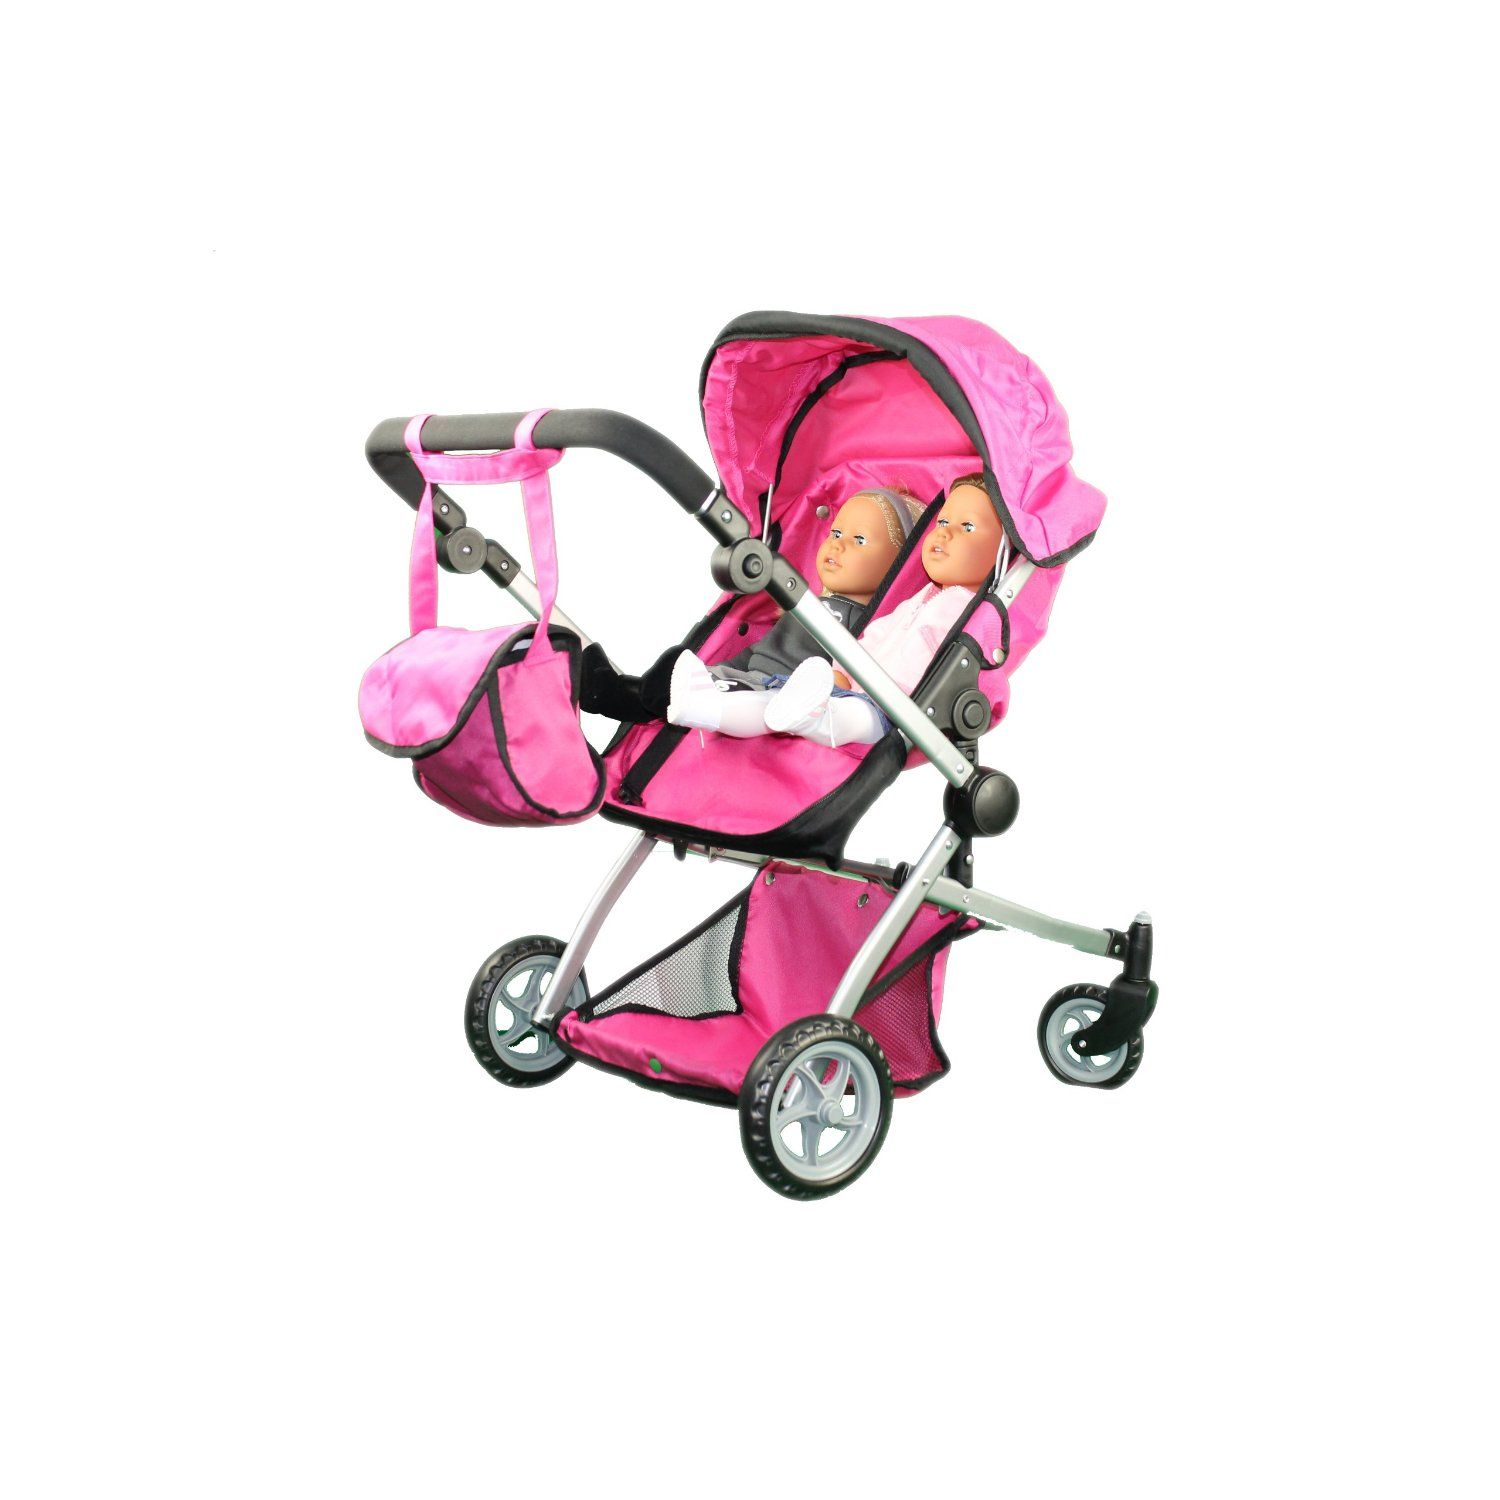 Baby Doll Stroller For 8 Year Old Strollers 2017